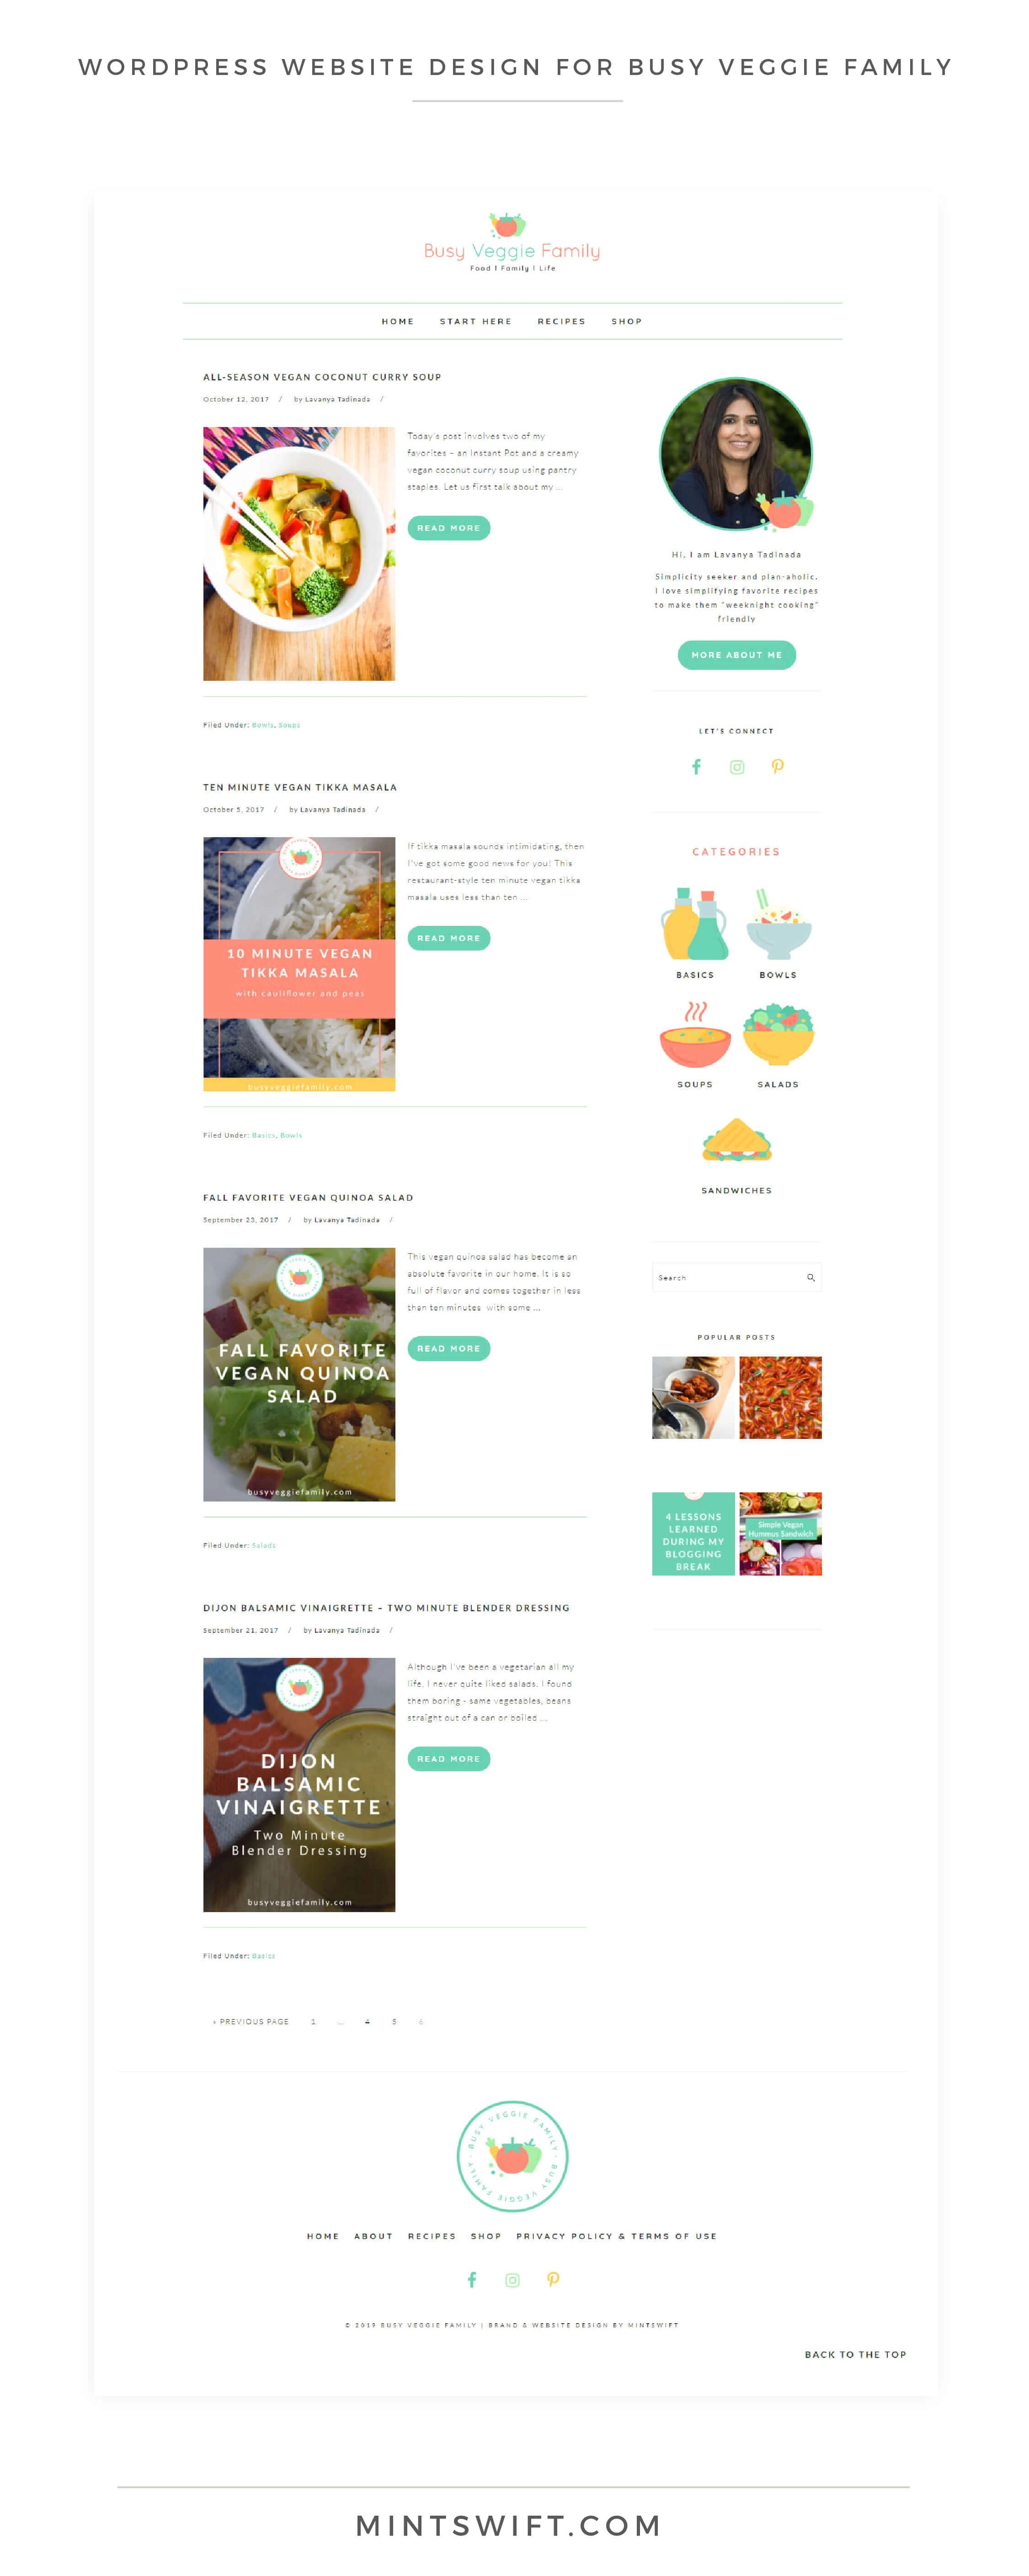 Busy Veggie Family - WordPress Website Design - MintSwift